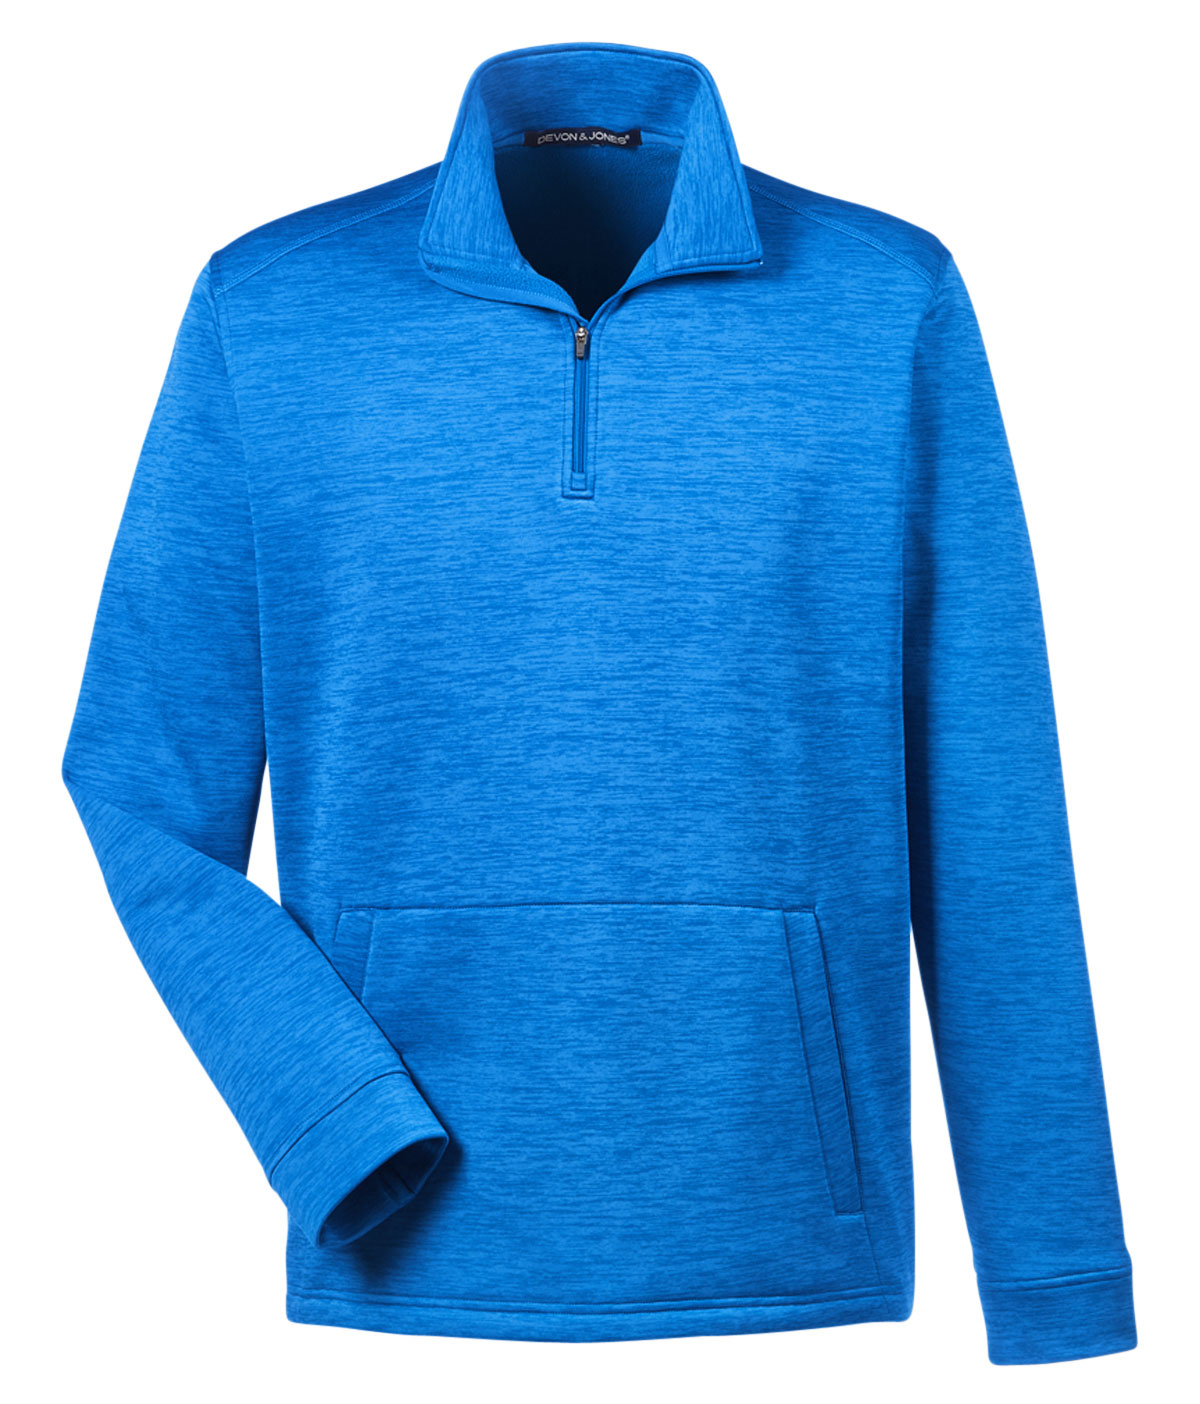 Devon & Jones Mens Newbury Melange Fleece Quarter-Zip